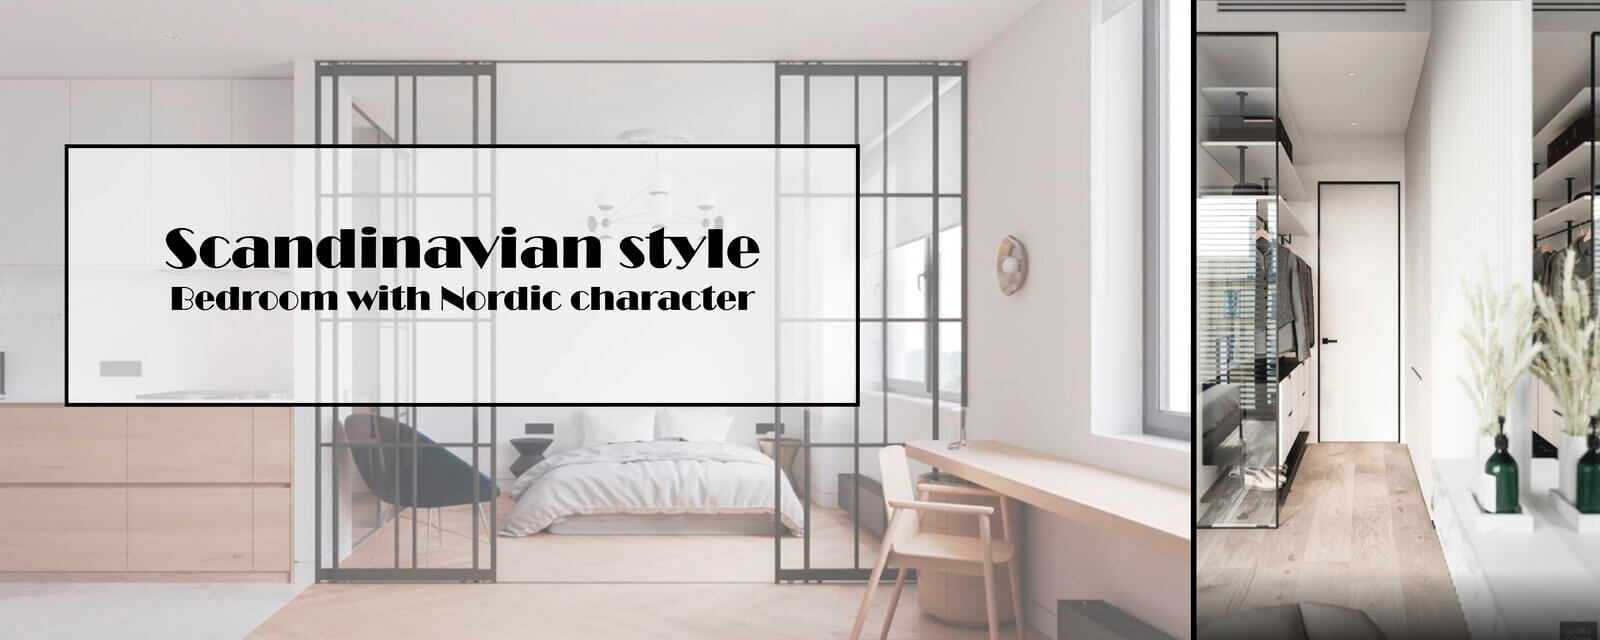 Scandinavian Style | Bedroom